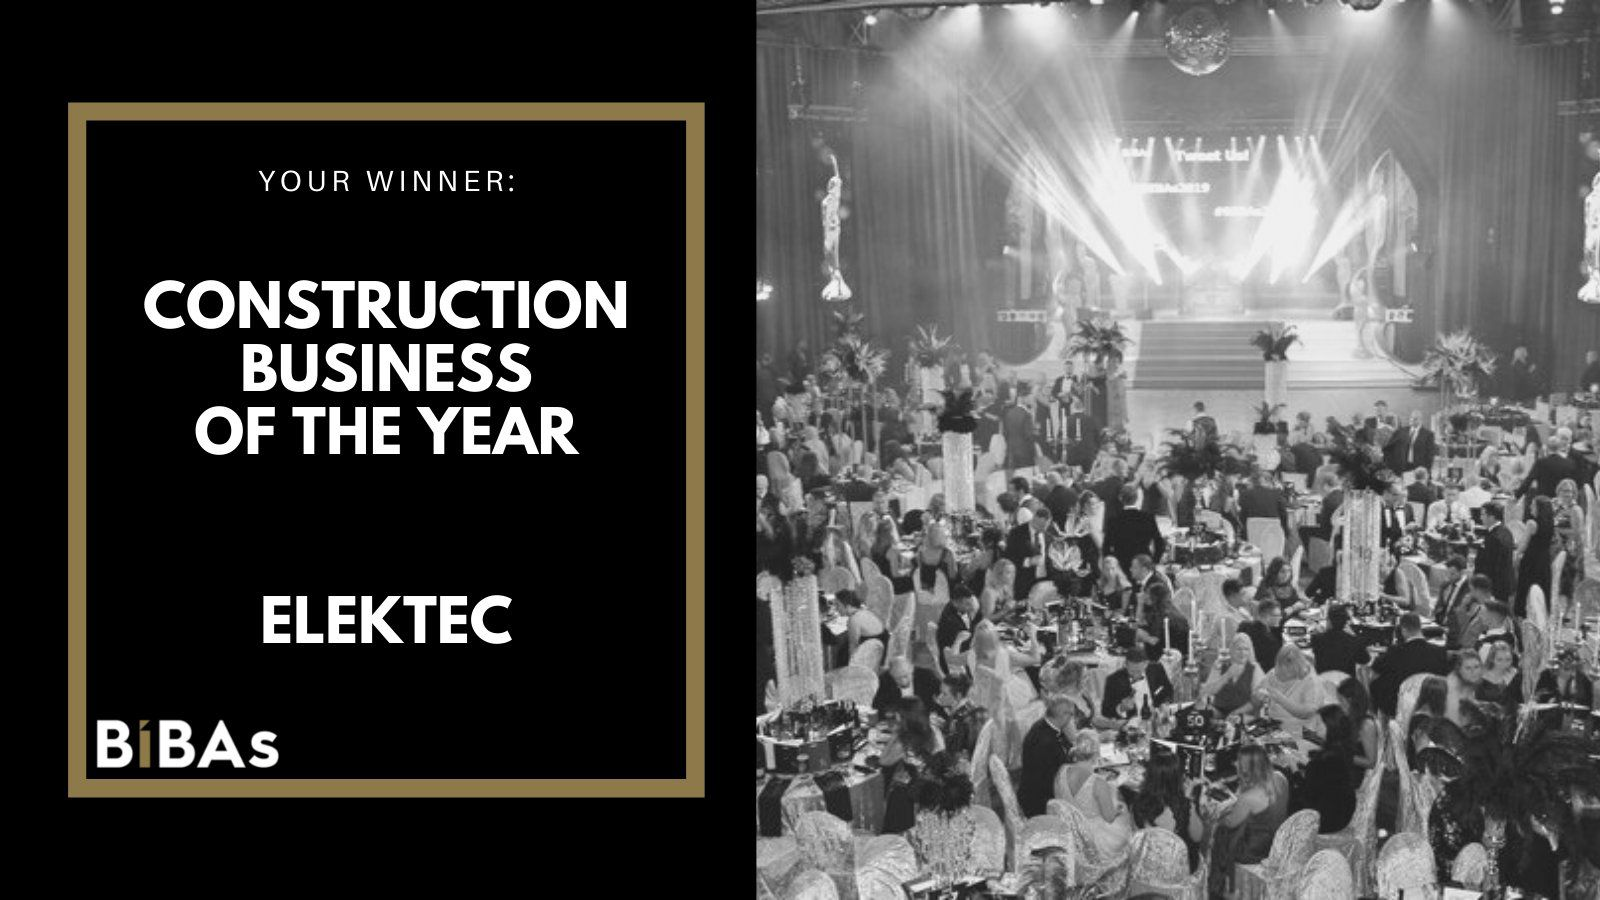 Elektec named the BIBAs Construction Business of the Year